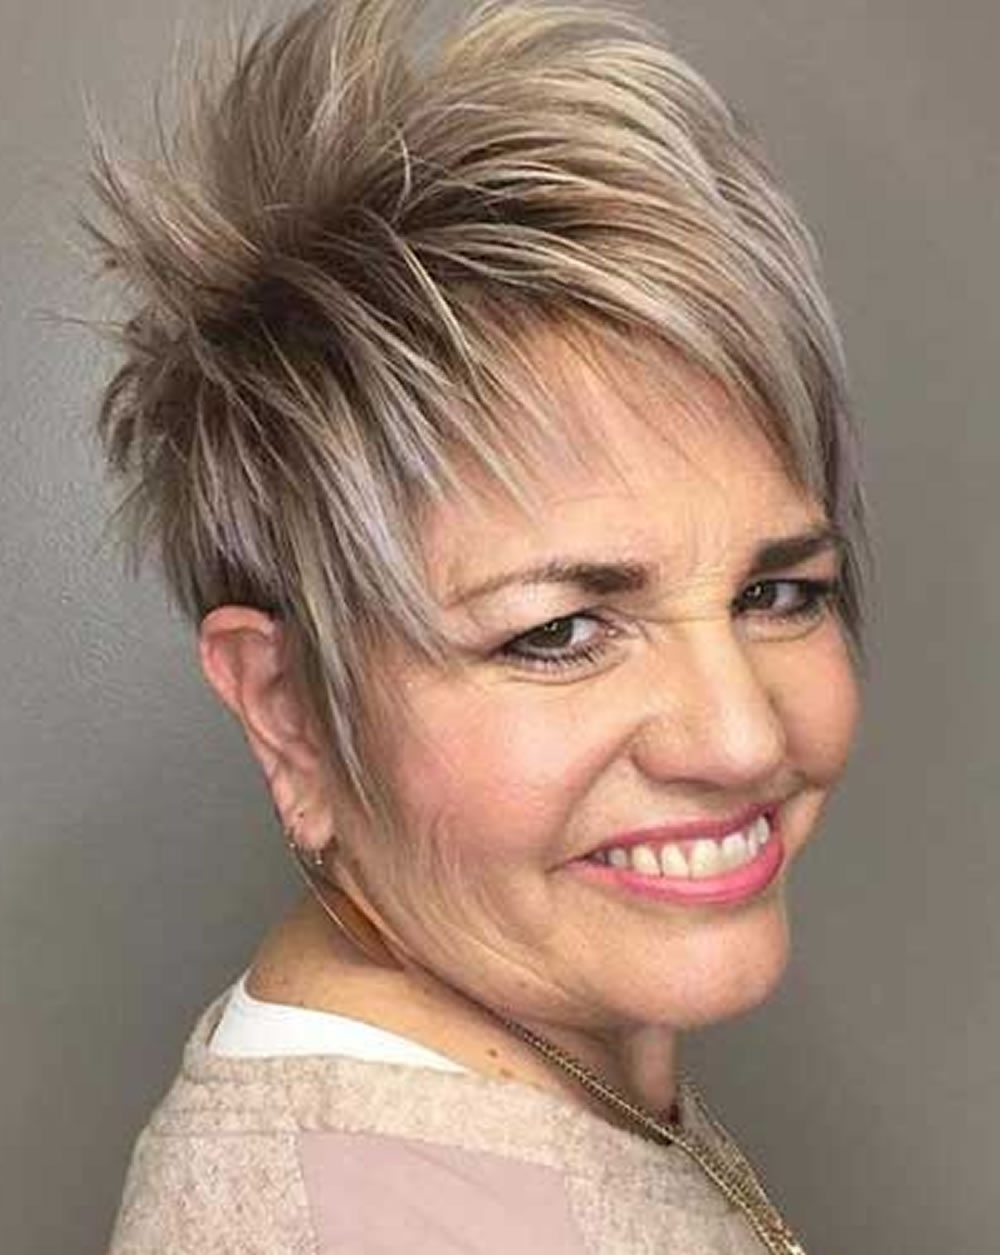 Showing Gallery of Pixie Hairstyles For Over 60 (View 11 of 15 Photos)